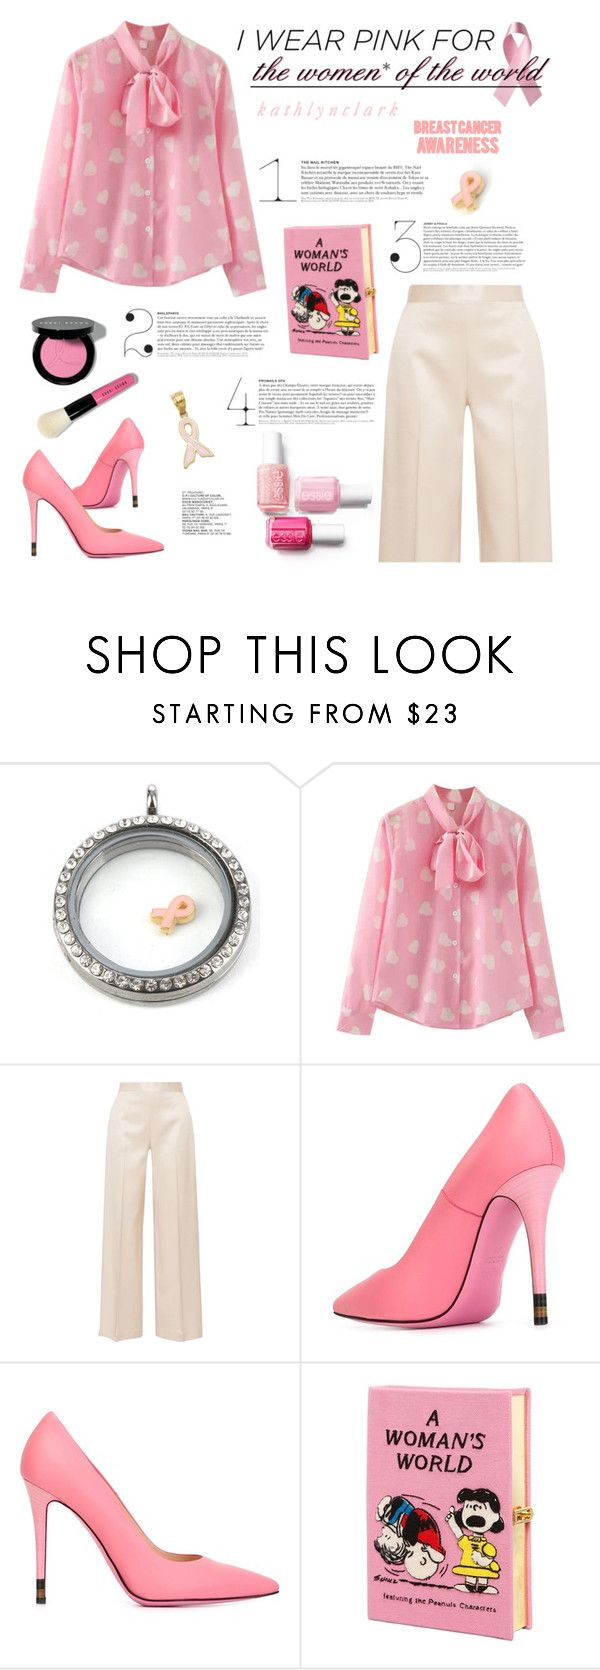 """""""313 : I Wear Pink for the Women* of the world - Fendi Anne Pumps."""" by kathlynclark ❤ liked on Polyvore featuring The Row, Fendi and Olympia Le-Tan"""